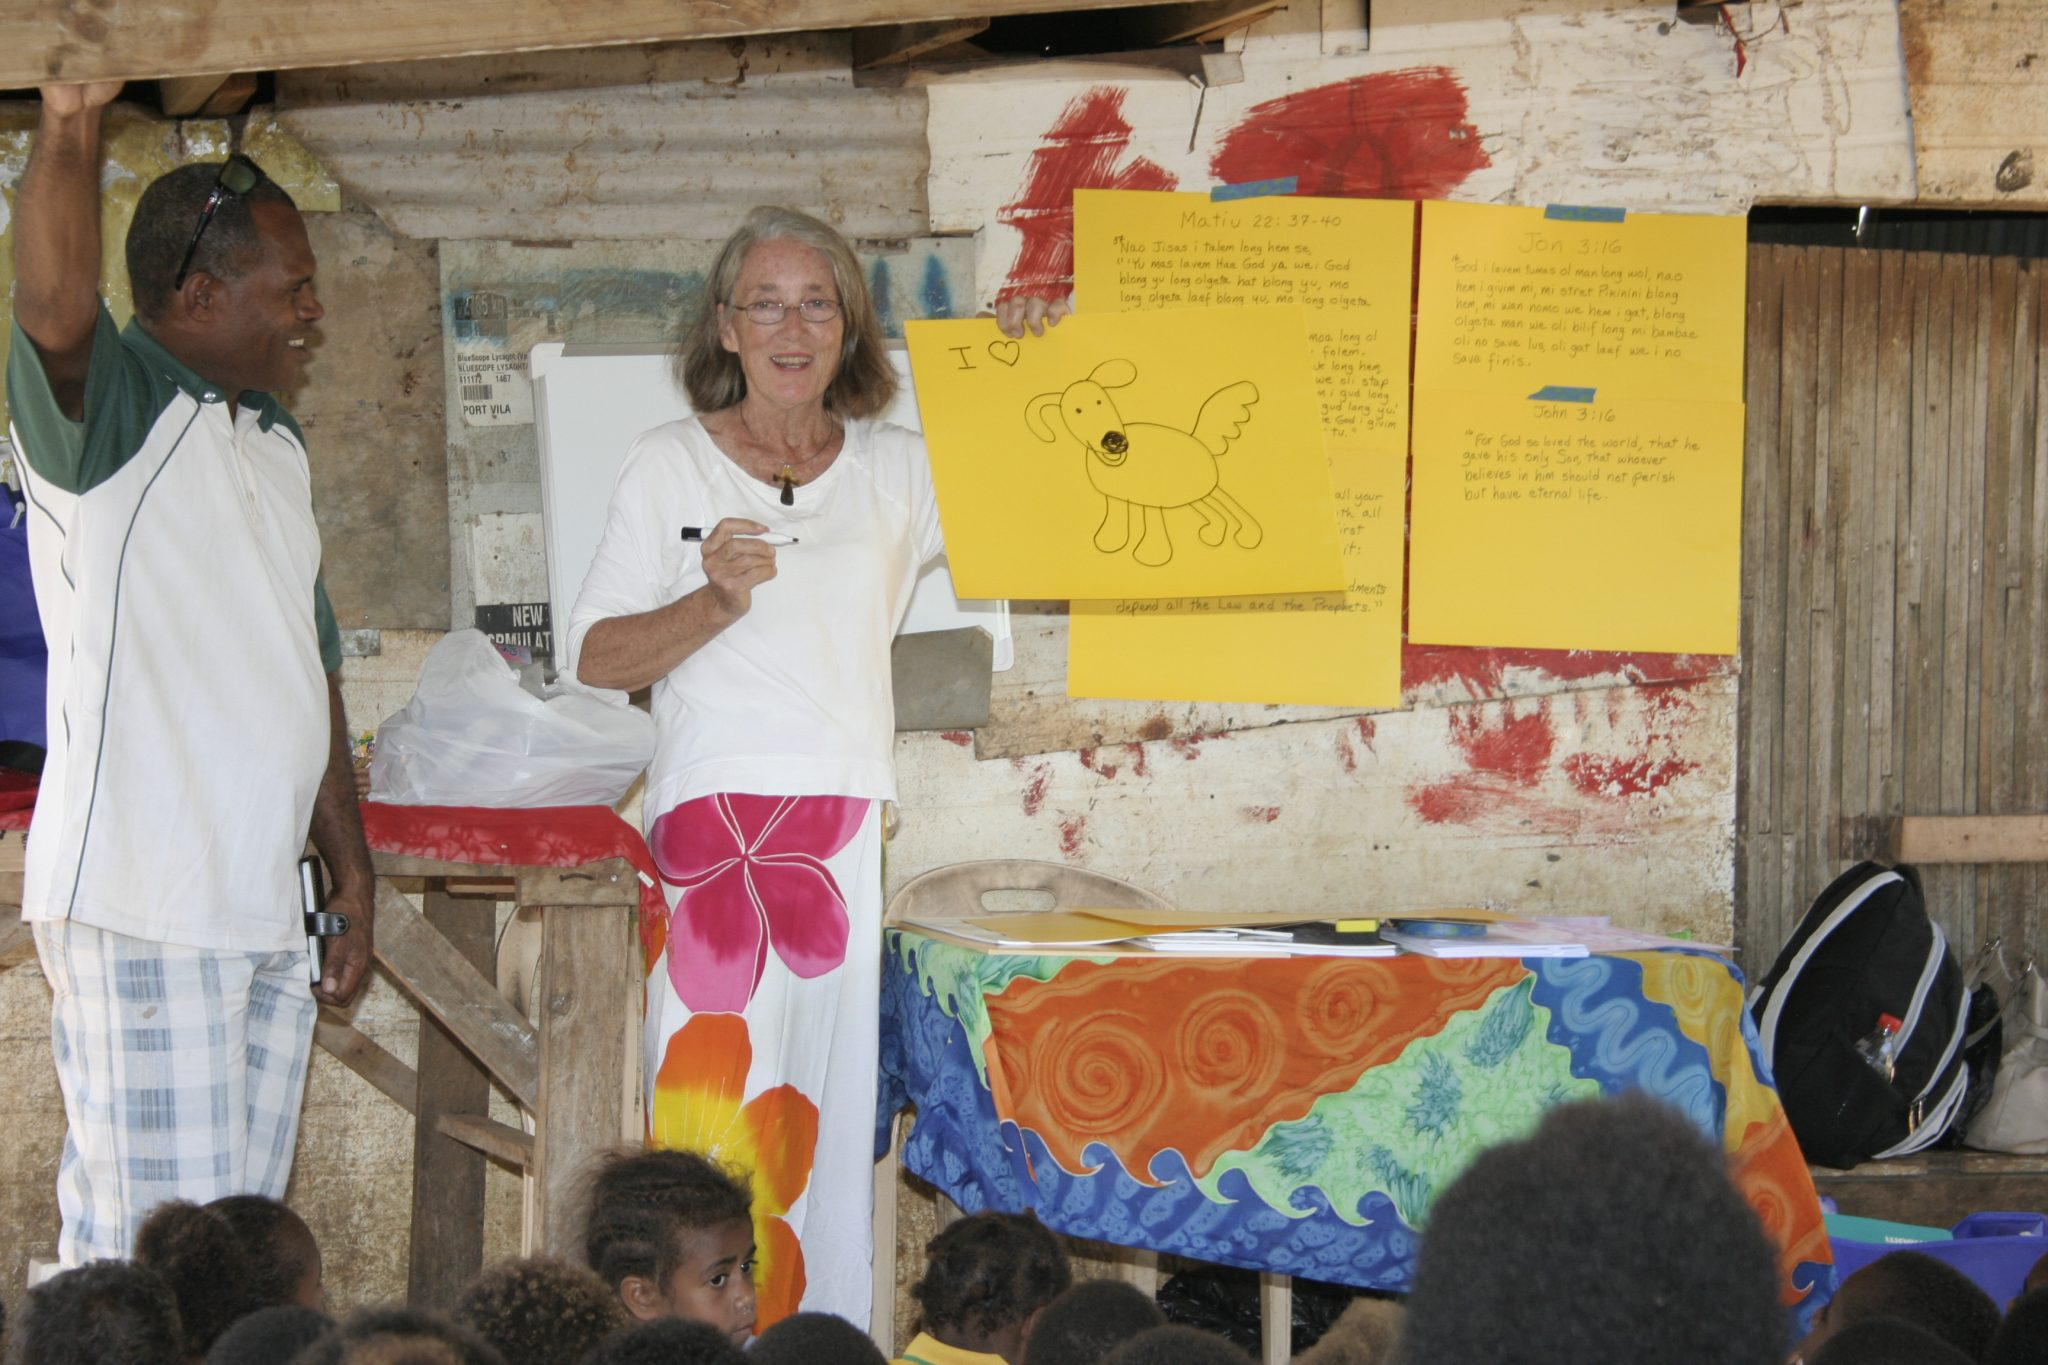 45-willy-a-leader-in-tagabe-village-helped-translate-into-bislama-while-anne-taught-about-jesus-through-an-art-lesson-to-141-children-jeff-assisted-by-purchasing-and-assembling-the-art-and-school